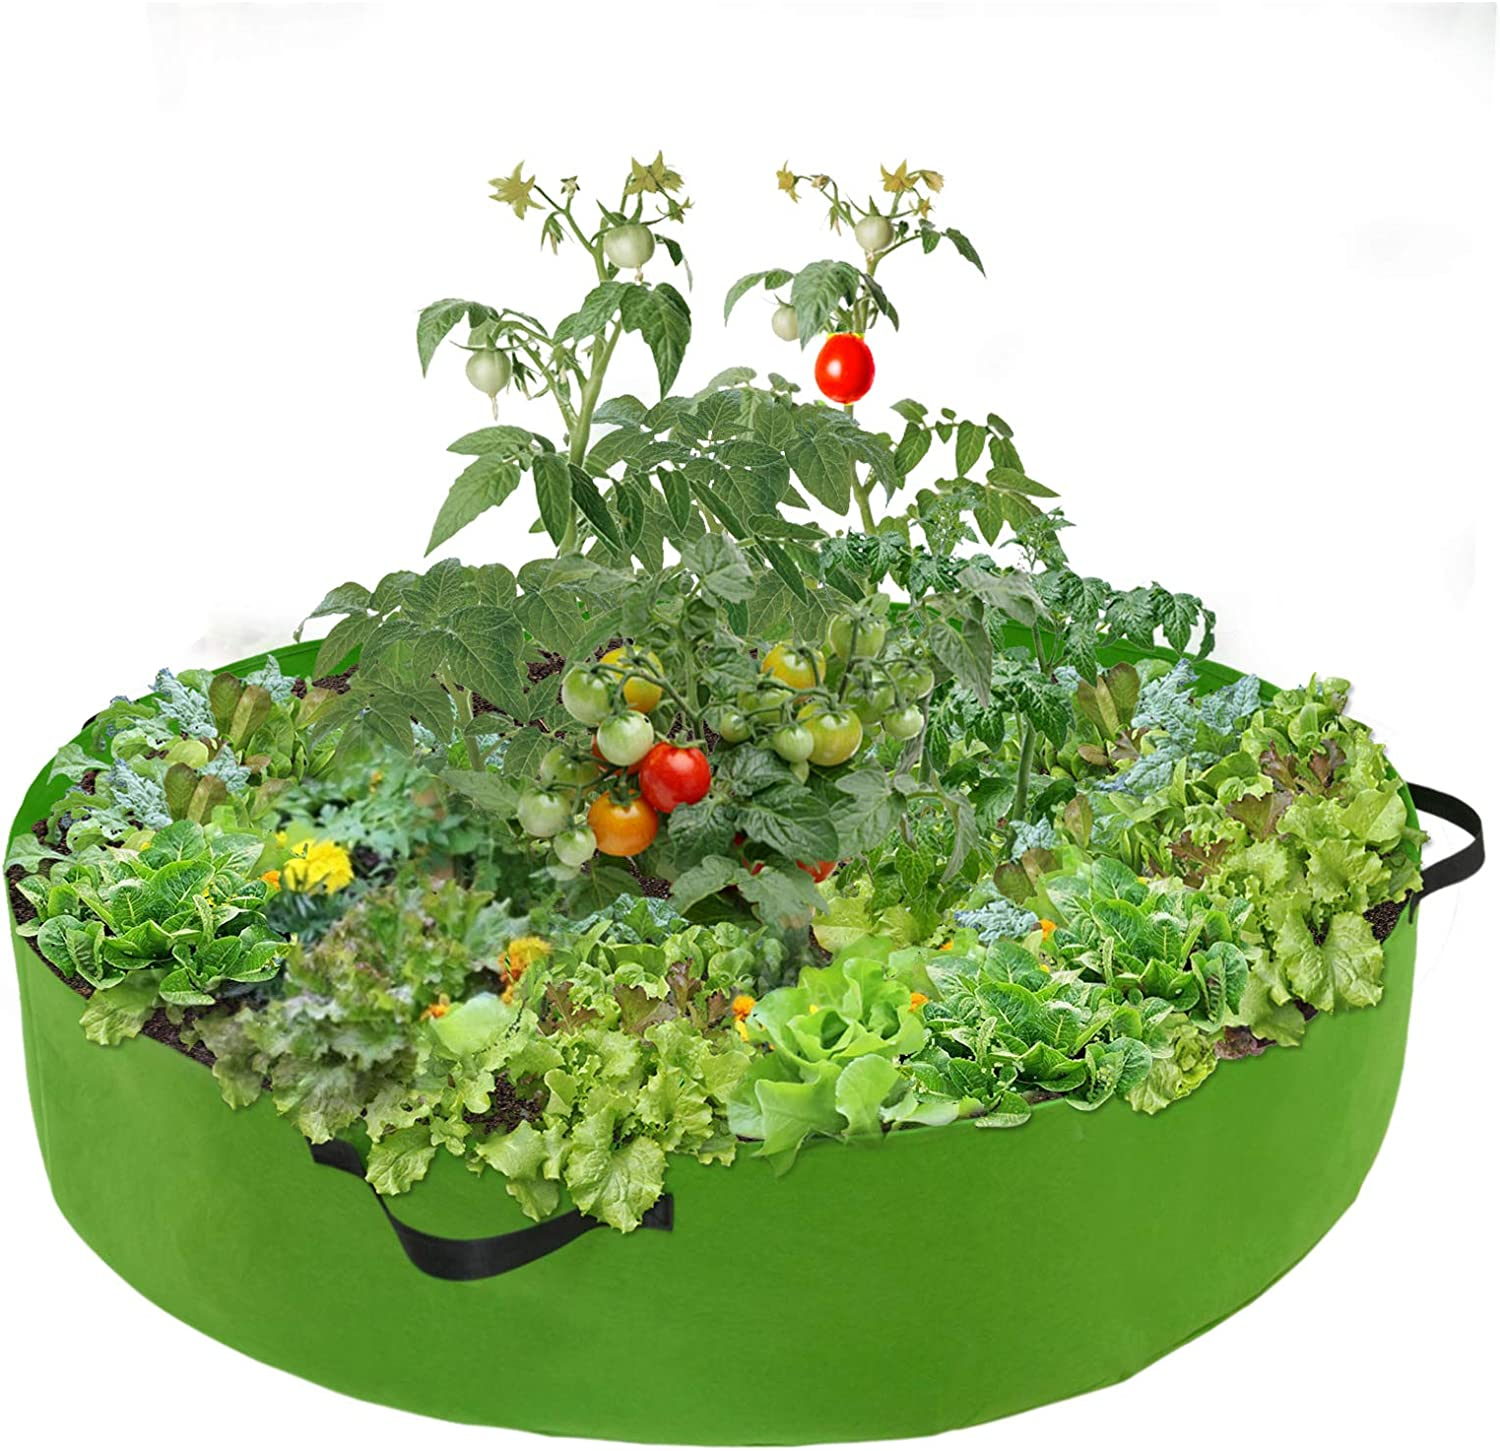 100 Gallon Round Fabric Raised Planting Bed with 4 Handles Thicken Non-Woven Garden Veggie Grow Bag Fabric Garden Plant Bed Planter Container for Garden Plant Vegetable Flower Herb Growing Green